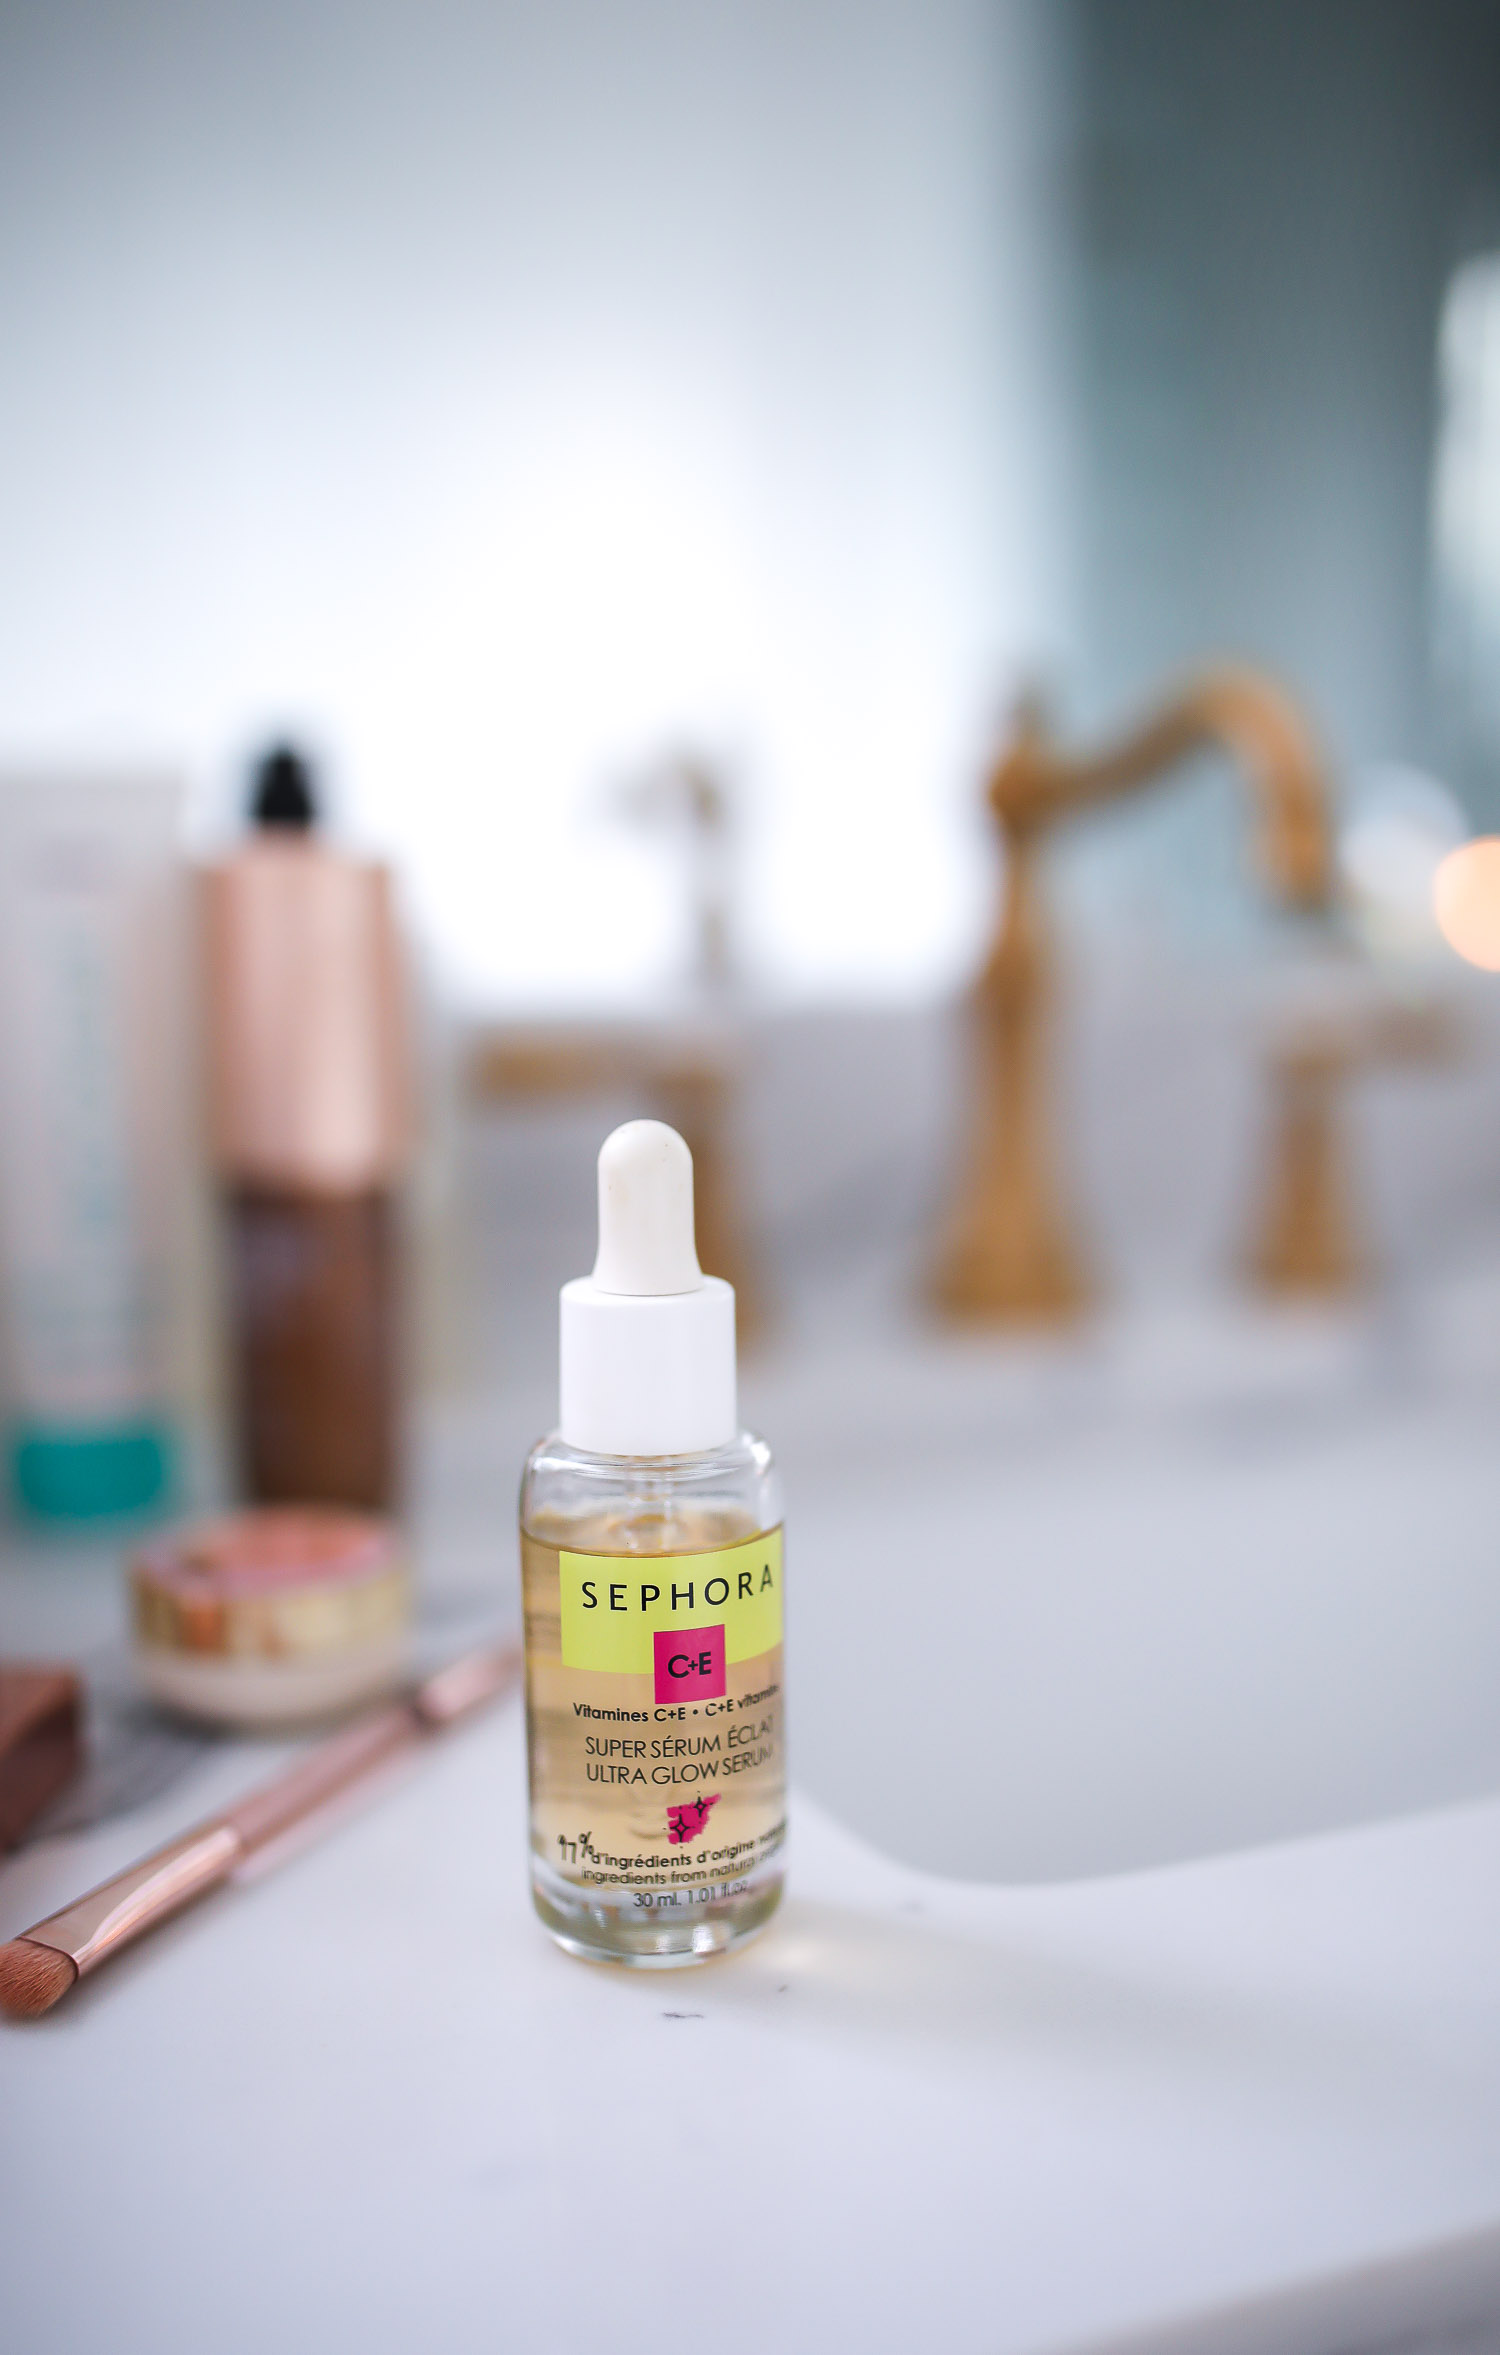 Sephora Favorites by popular US beauty blog, The Sweetest Thing: image of a Sephora C+E Super Serum.